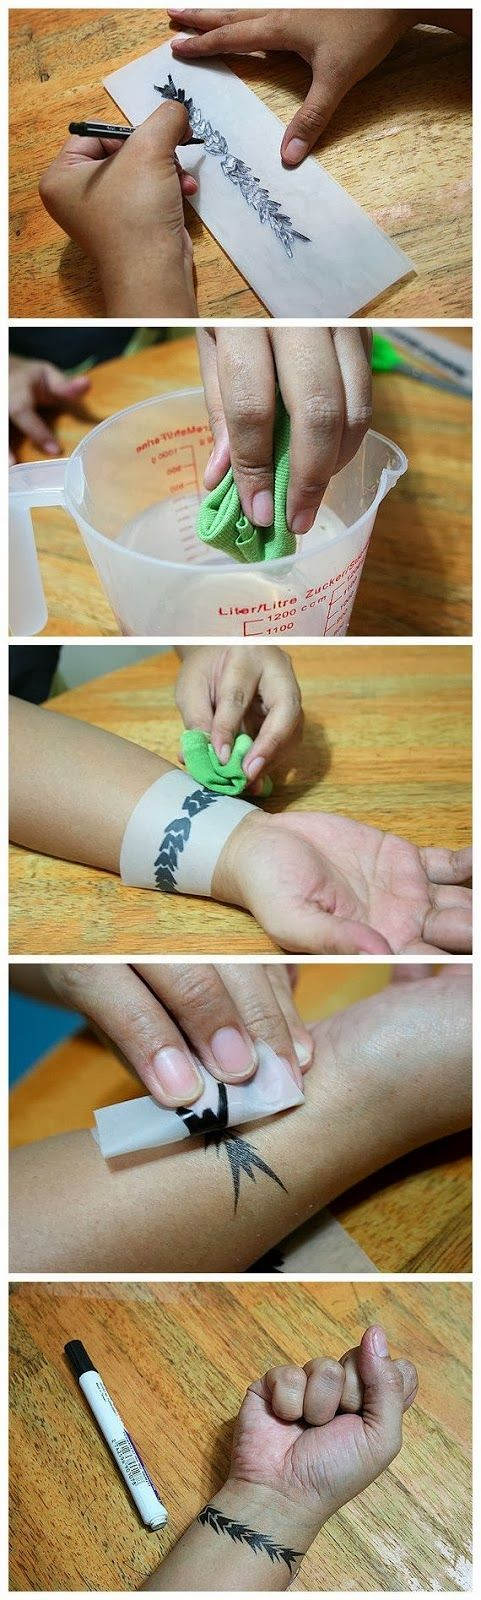 How to Create Your Own Temporary Tattoo | DIY  Crafts Tutorials use your contact details instead! Fun!: